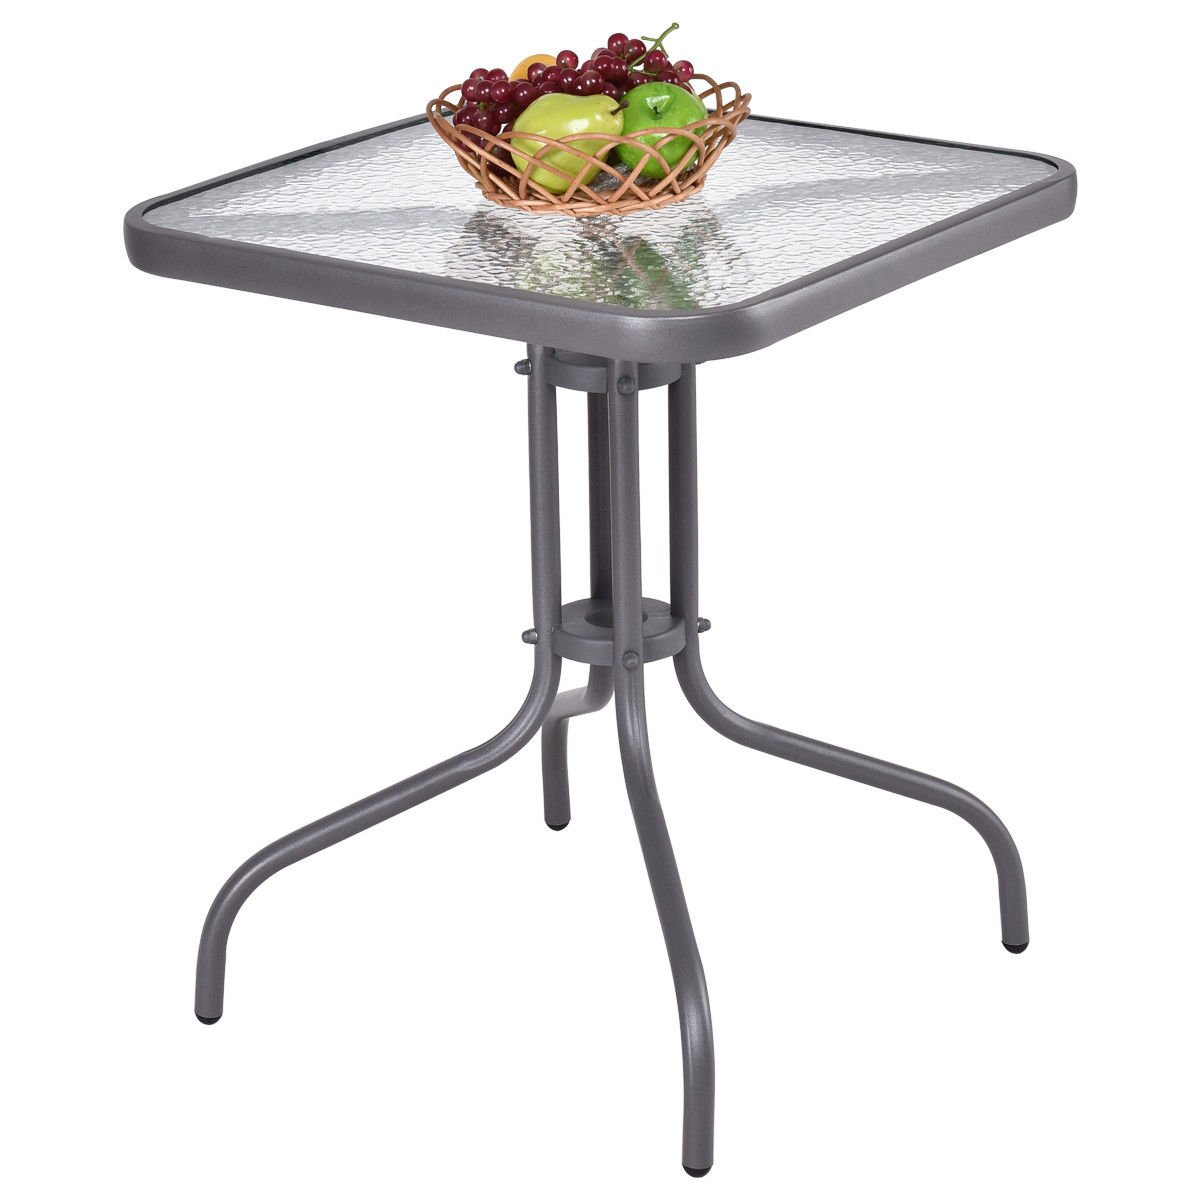 globe house products ghp lbs weight capacity mdf img php zaltana mosaic outdoor accent table tangkula patio garden yard lawn indoor tempered glass top steel frame coffee mid